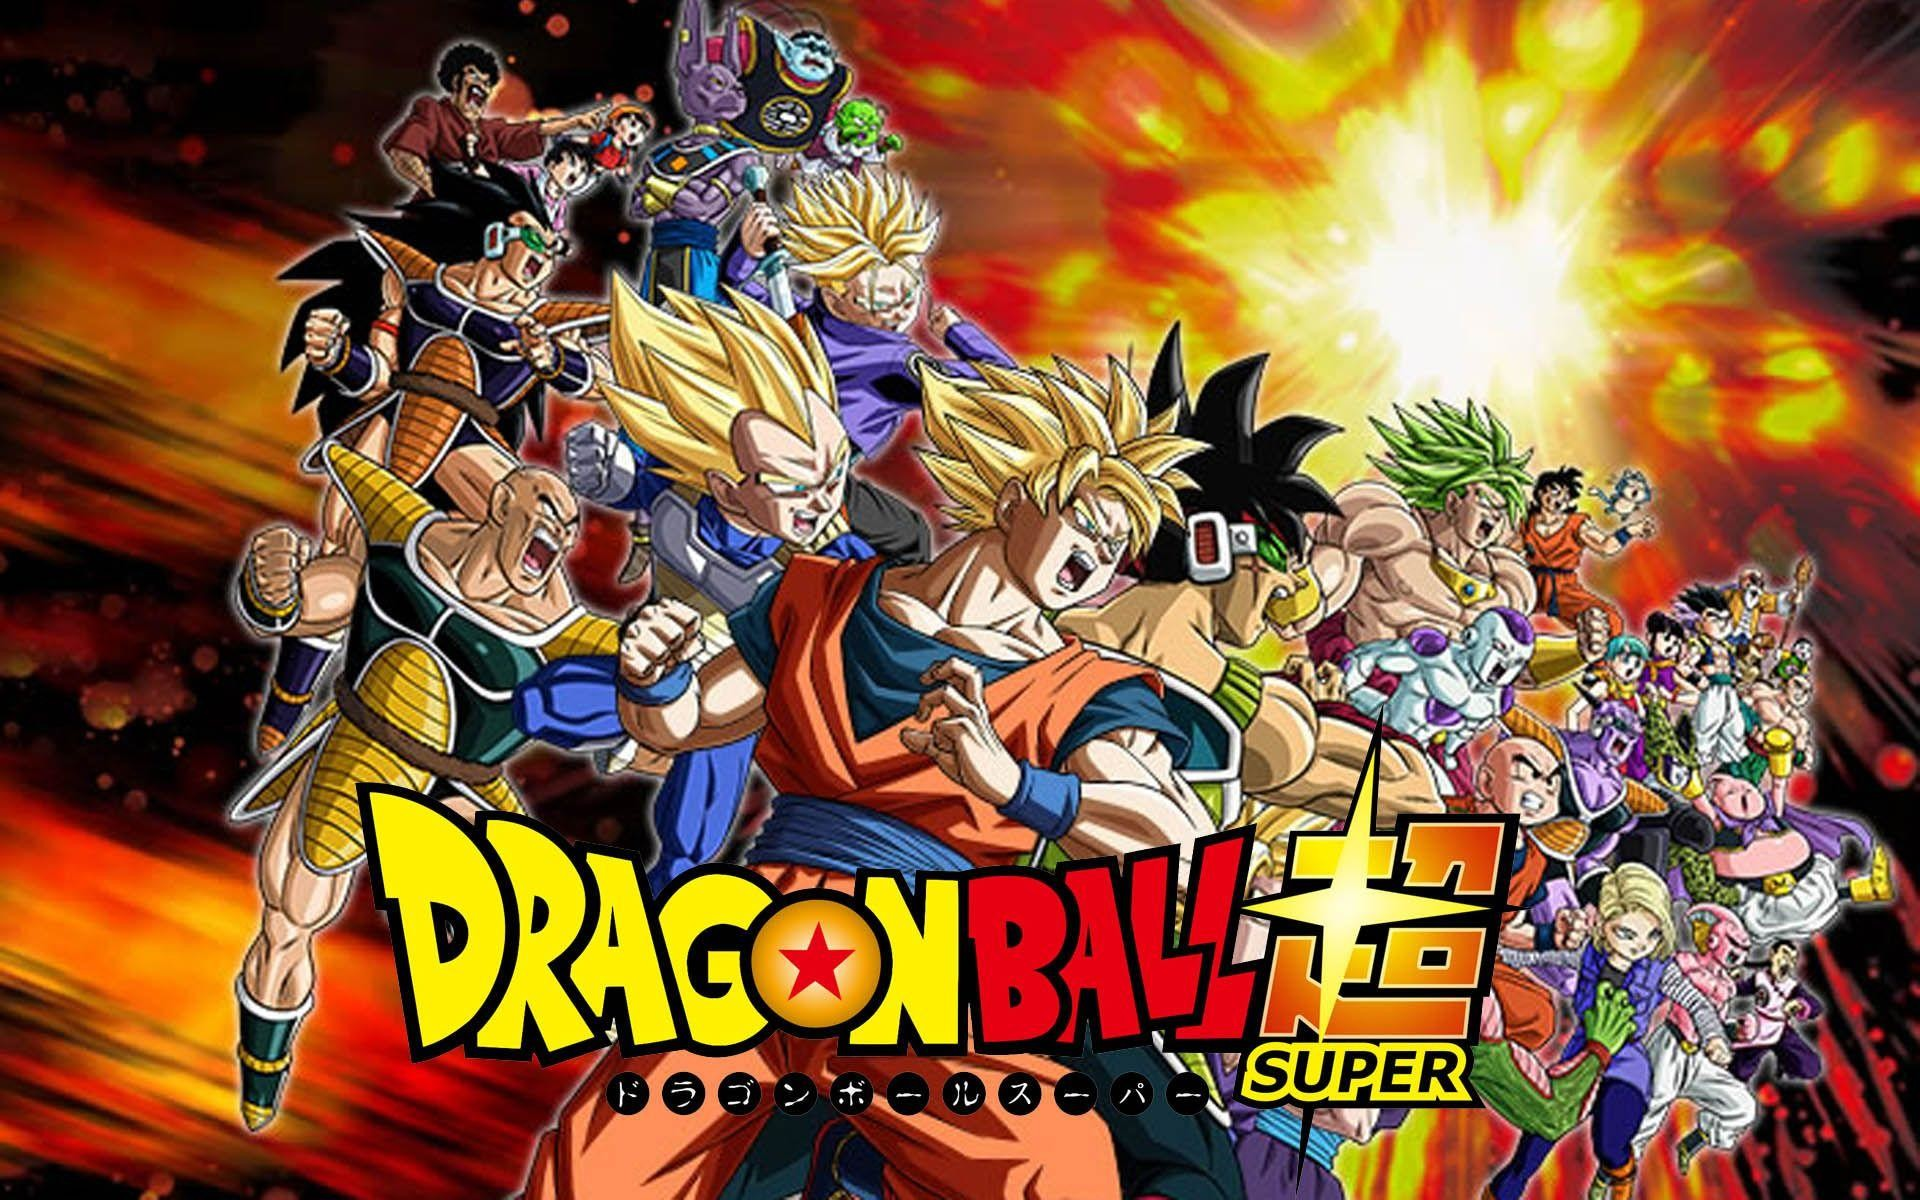 1920x1200 Dragon Ball Super Wallpaper - WallpaperSafari